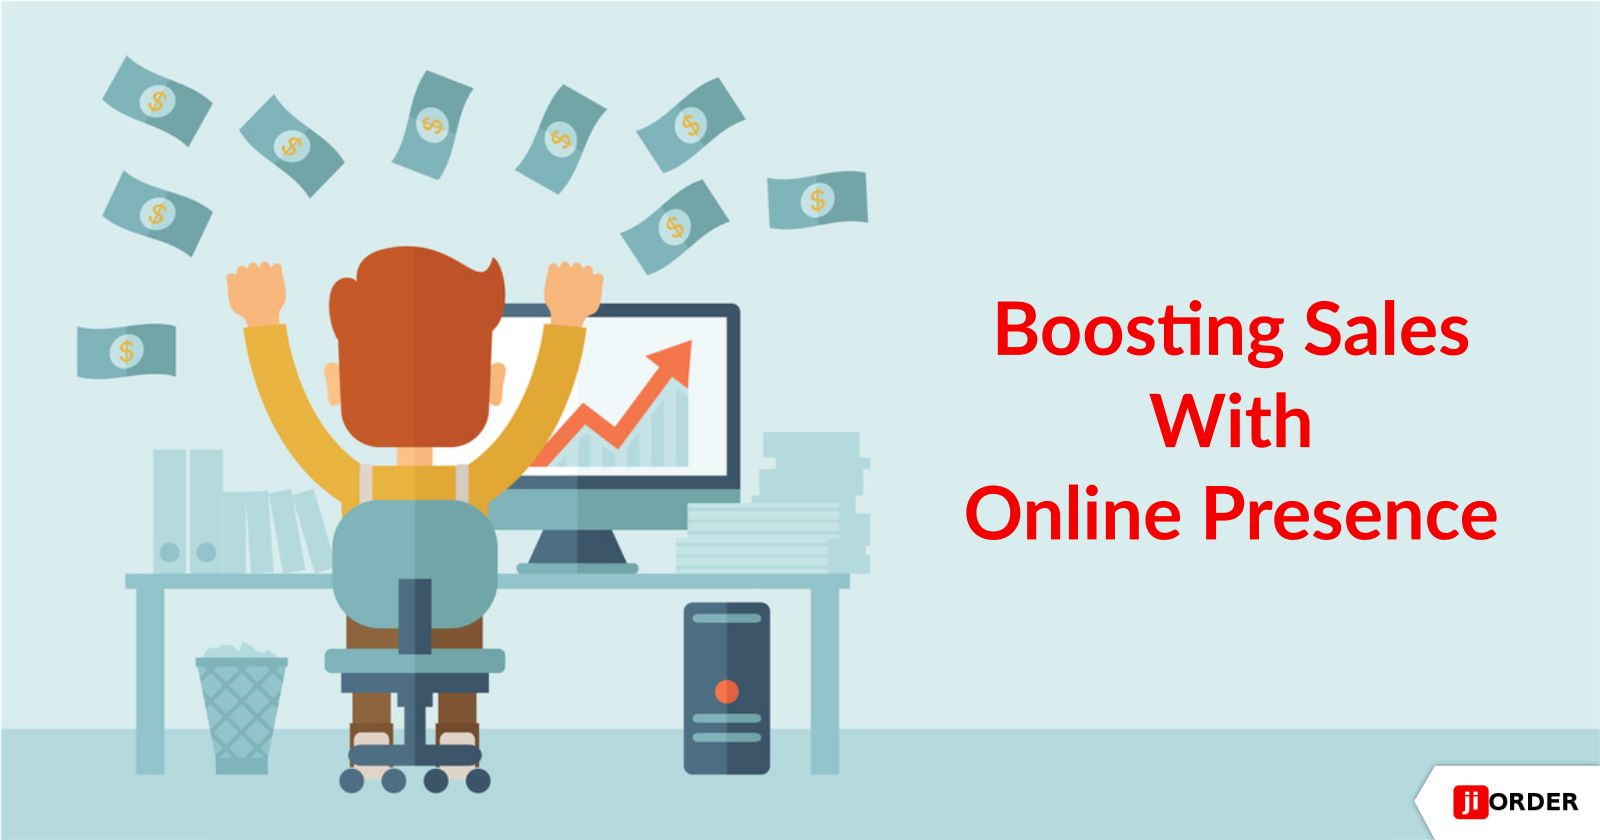 How Online Presence Can Benefit Your Restaurant?